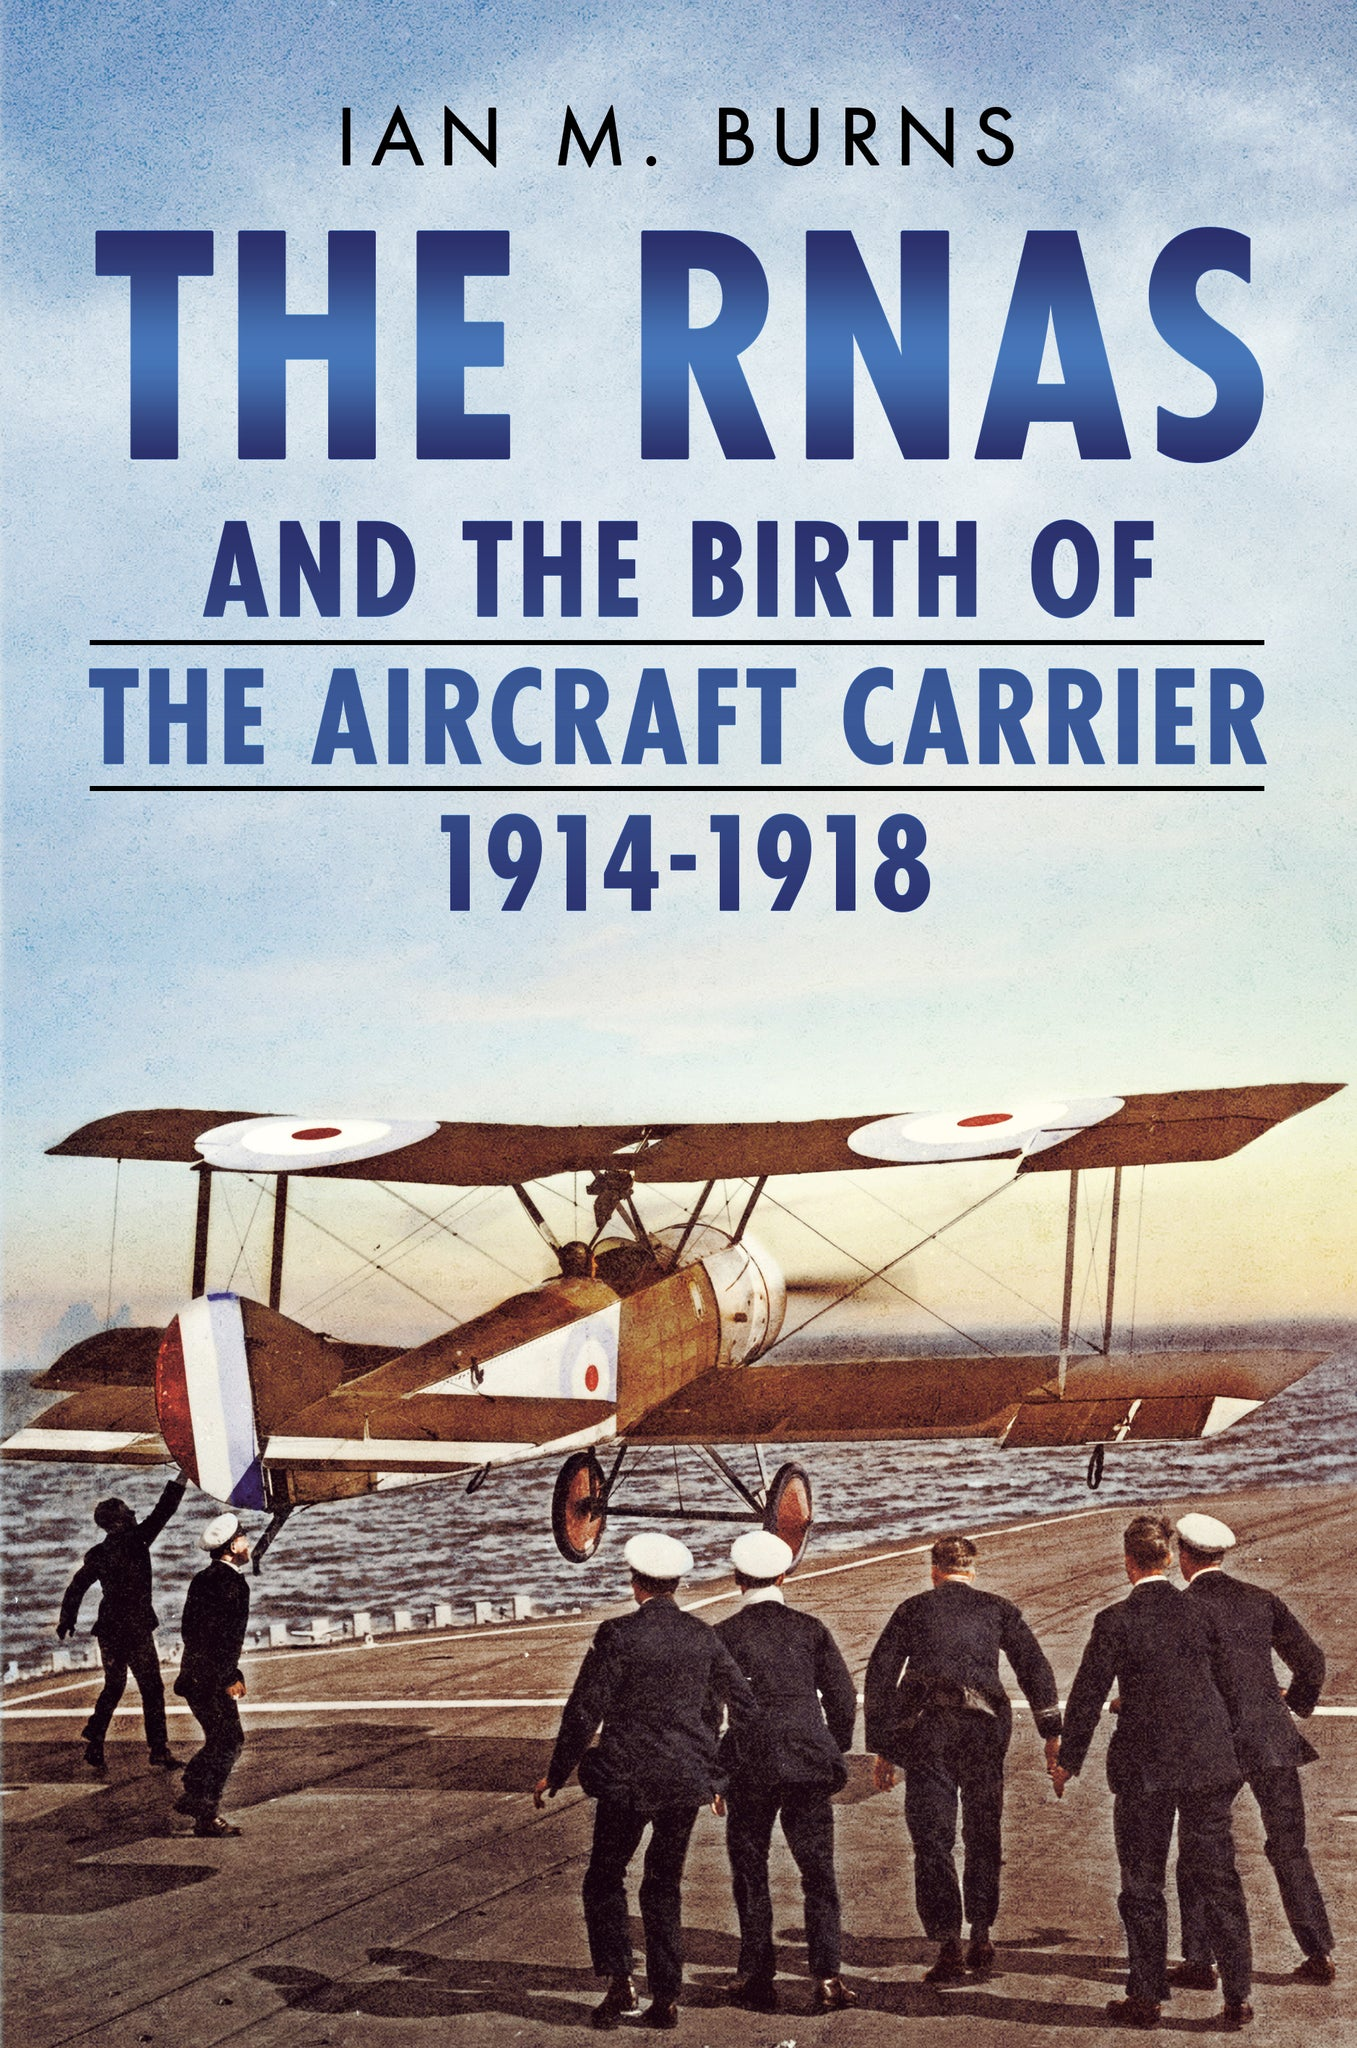 The RNAS and the Birth of the Aircraft Carrier 1914-1918